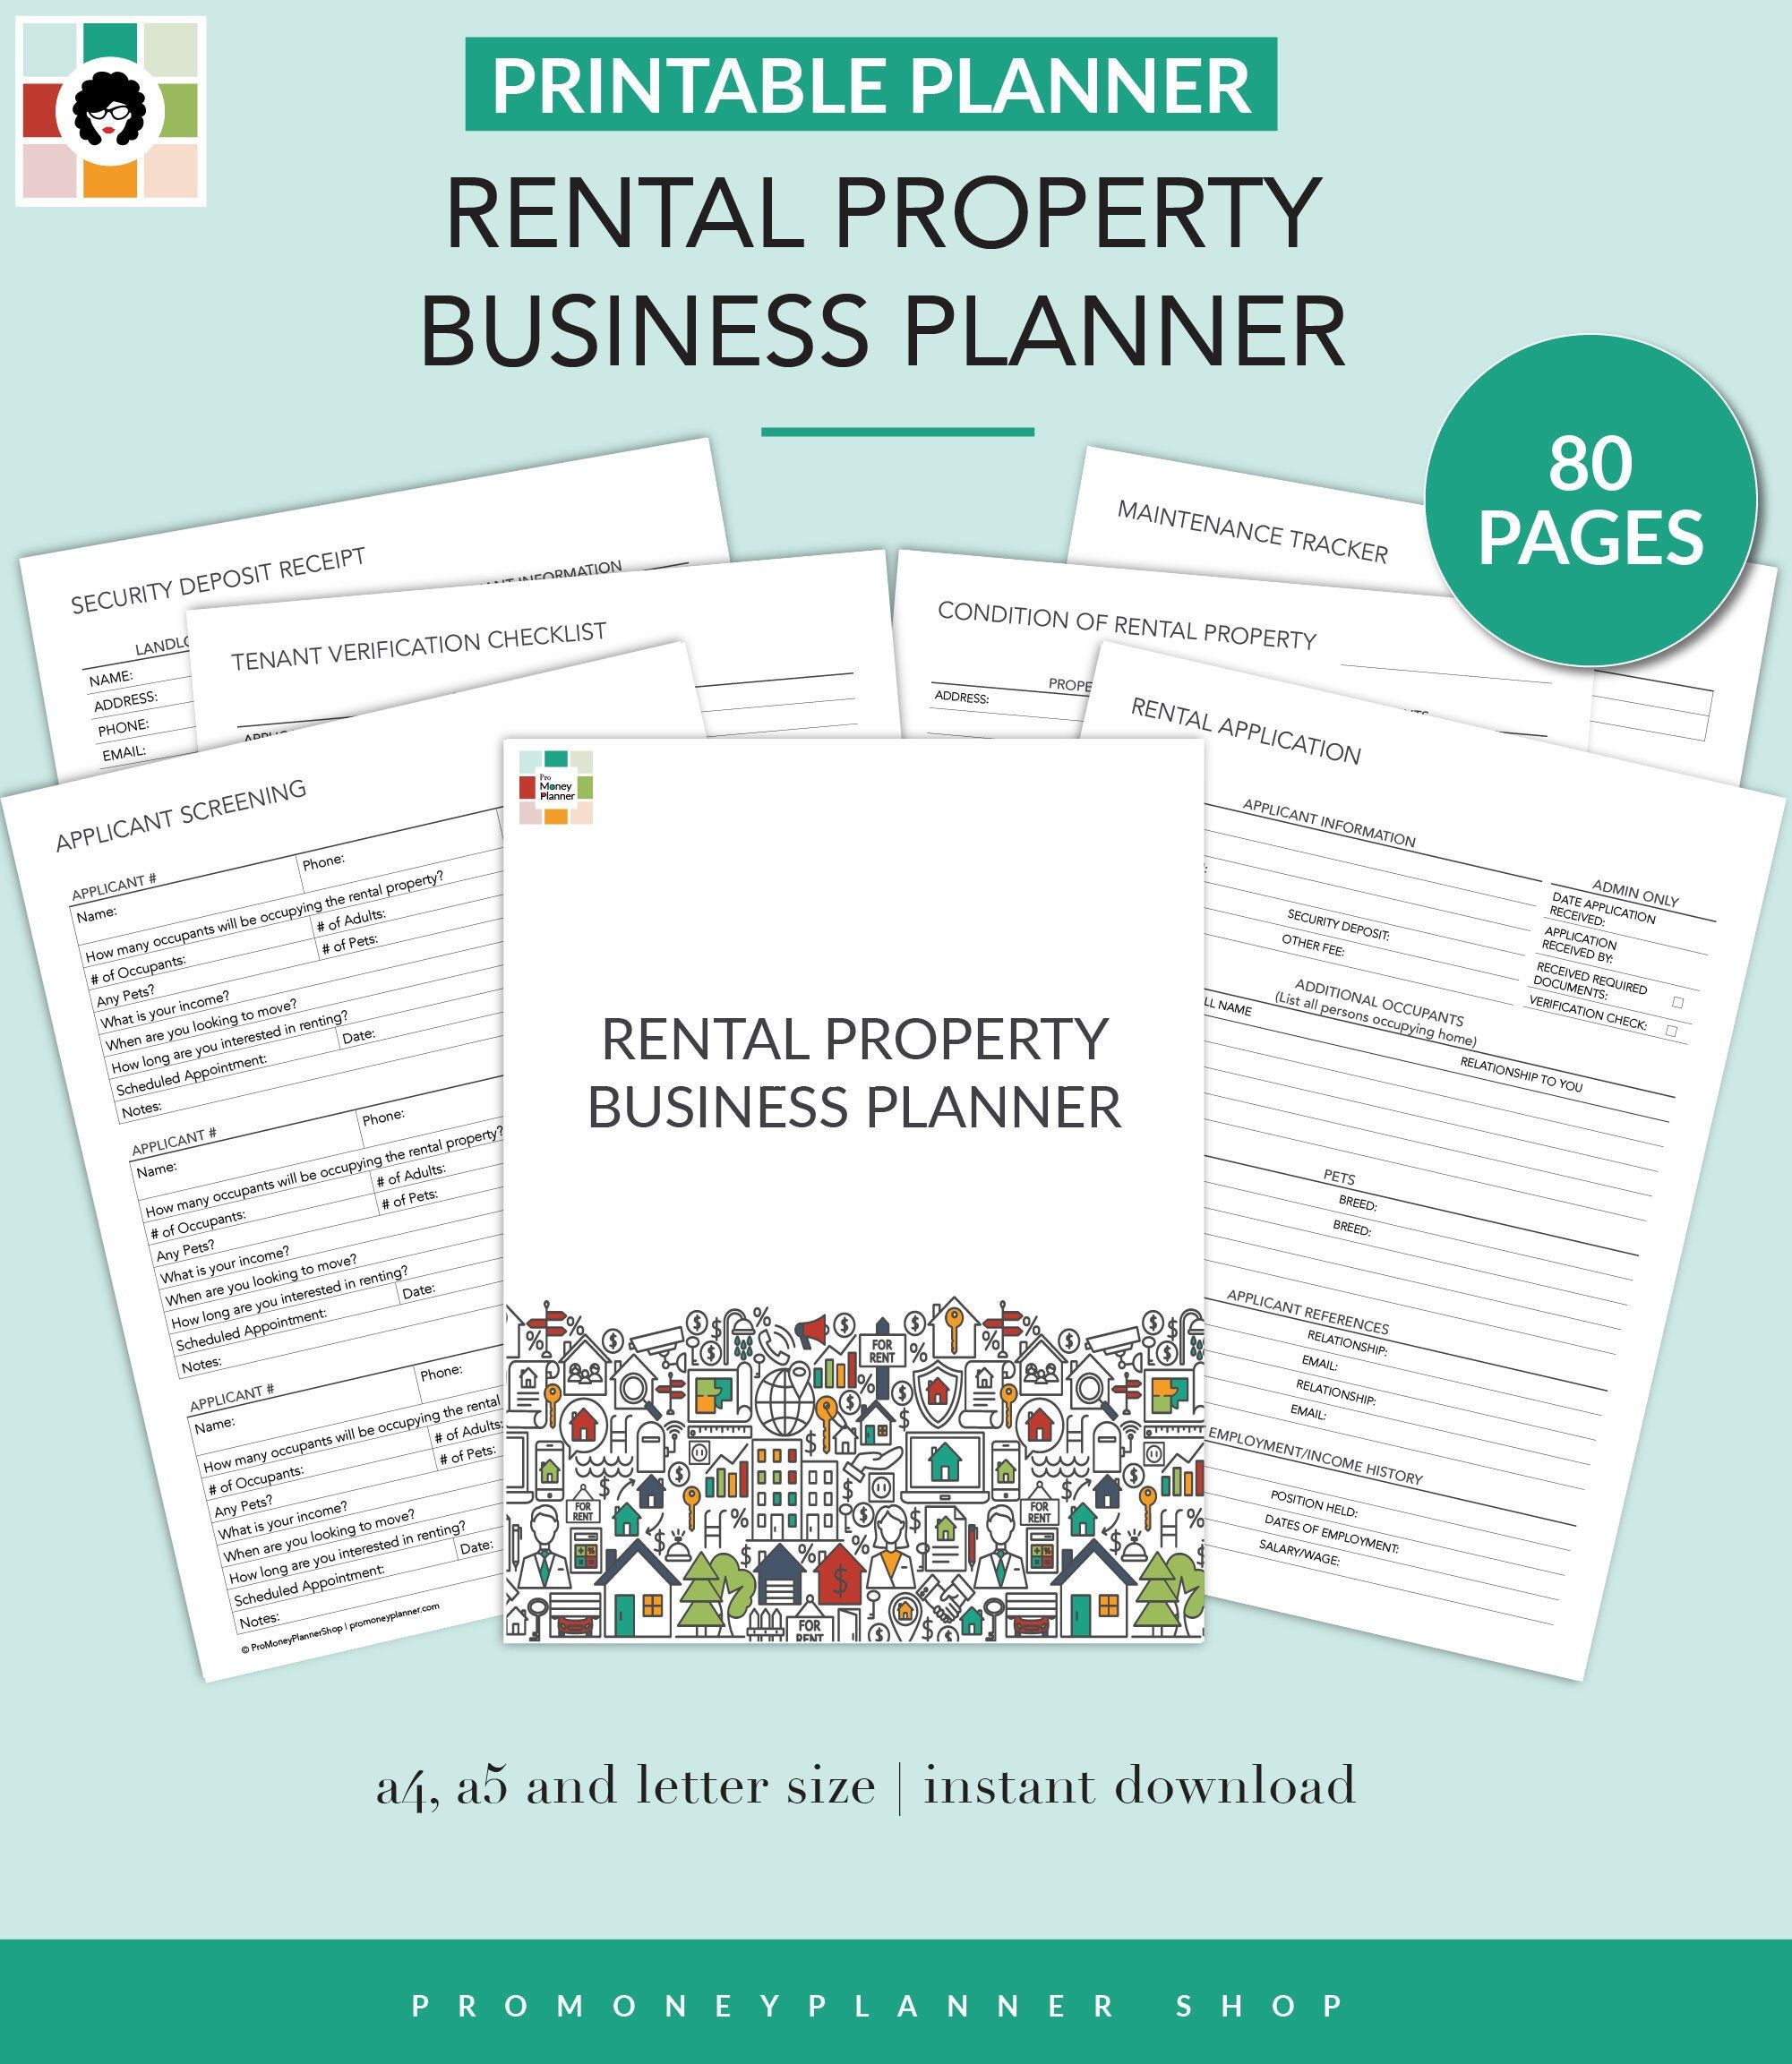 Rental Property Business Planner Printable Pdf Letter Etsy In 2020 Business Planner Printable Planner Being A Landlord